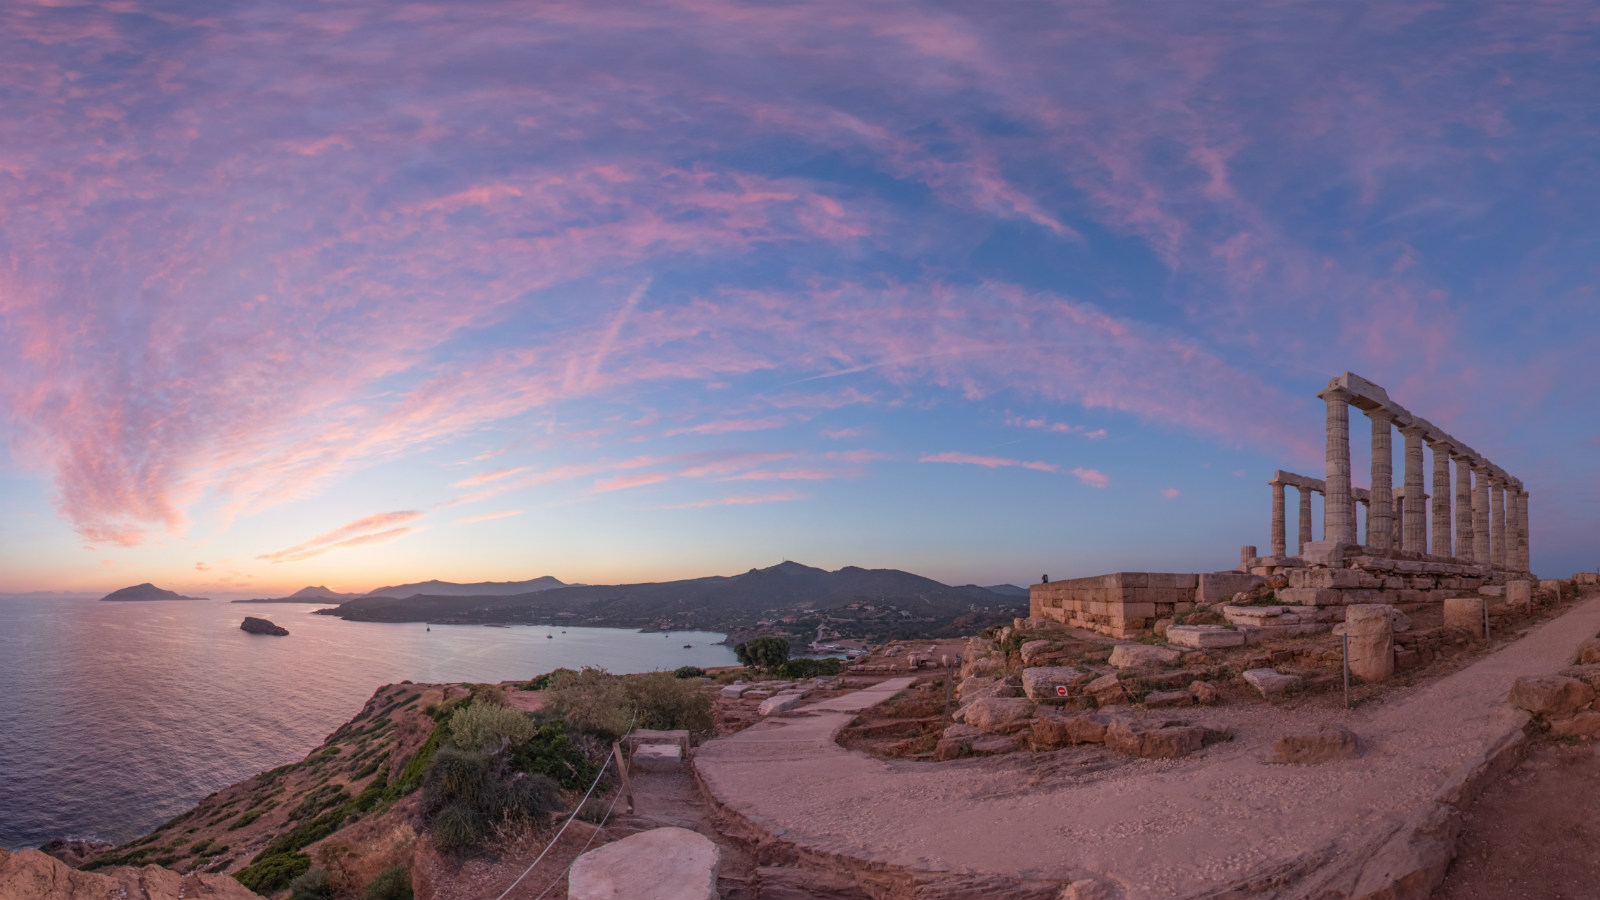 Destination Athens_Temple of Poseidon at Cape Sounio_Sunset view_Greece